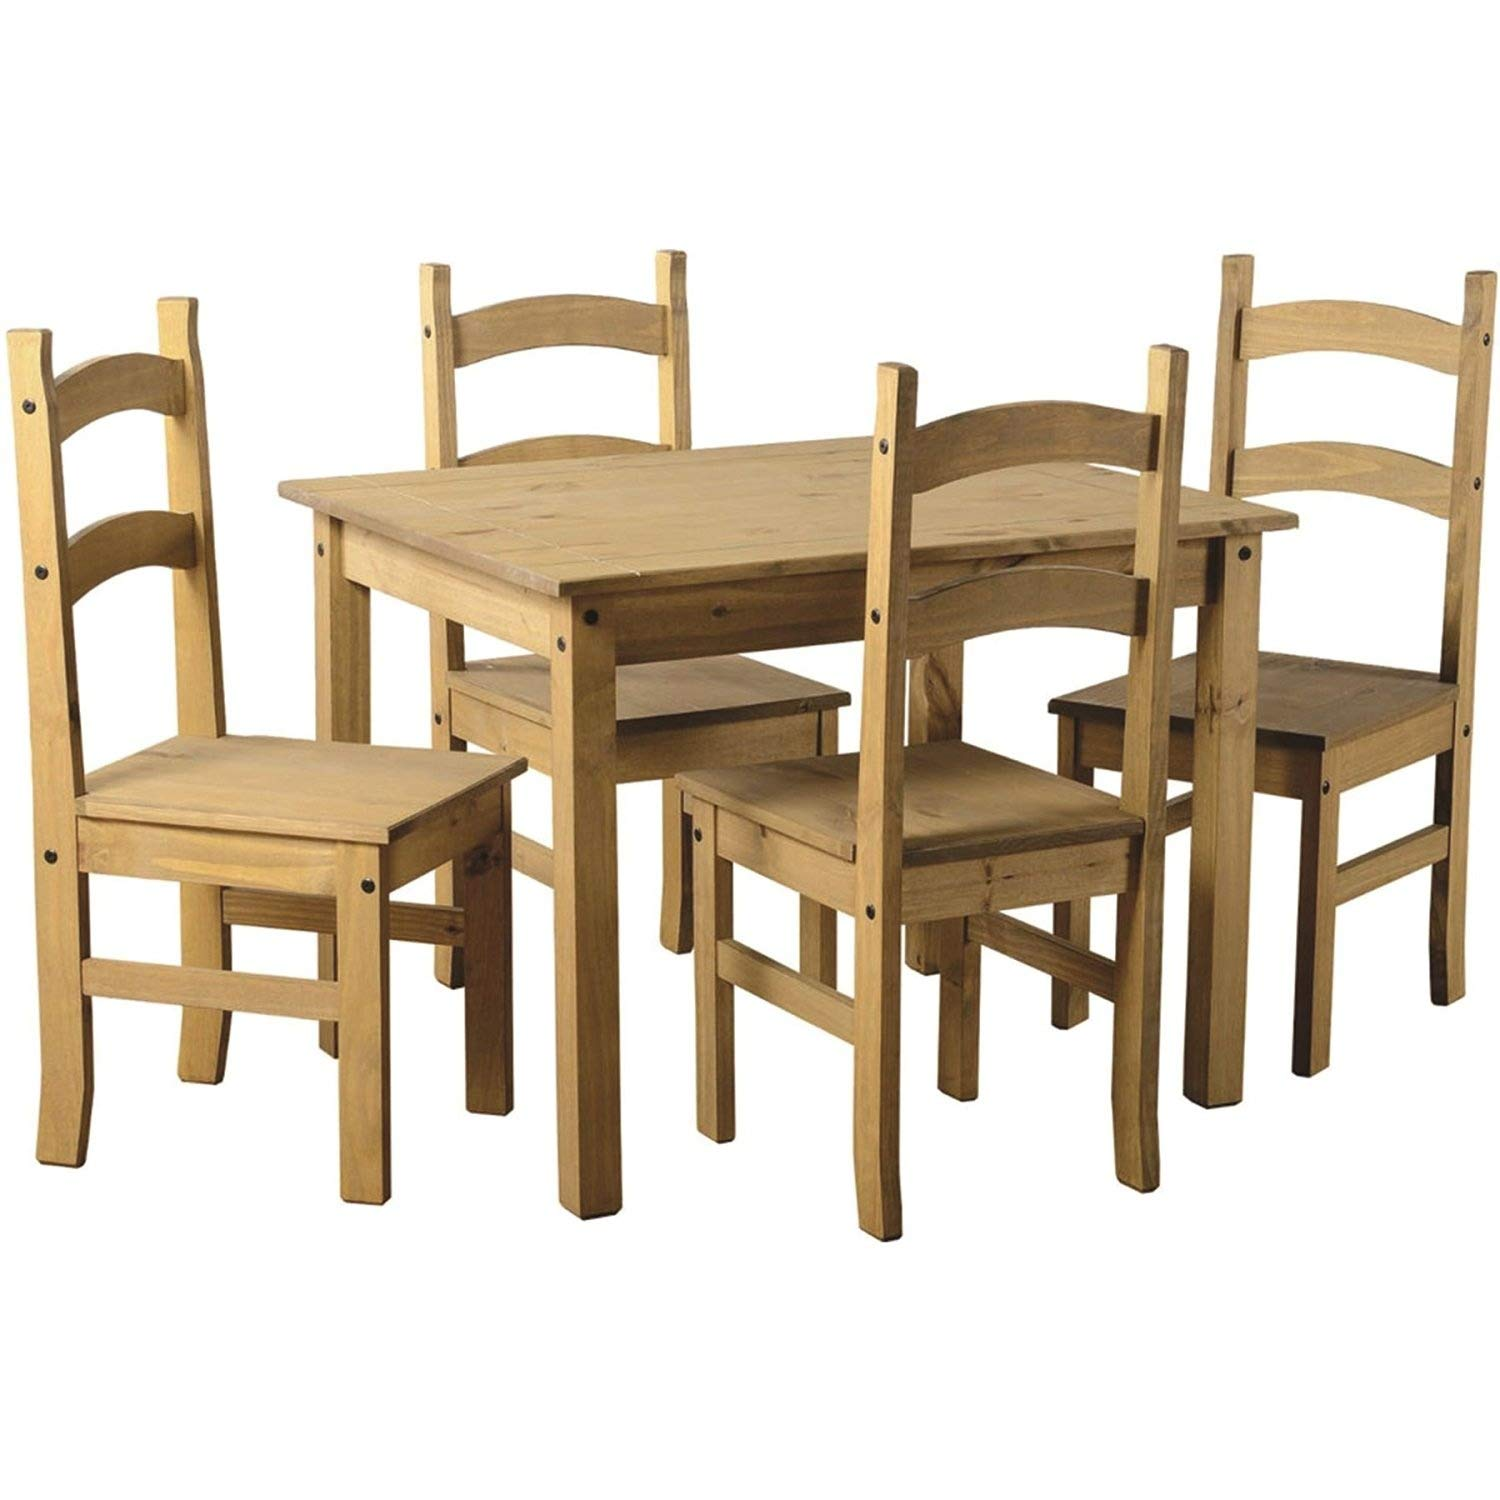 pine dining room table and chairs amazon co uk rh amazon co uk Round Dining Table Hillsdale Dining Chairs and Tables